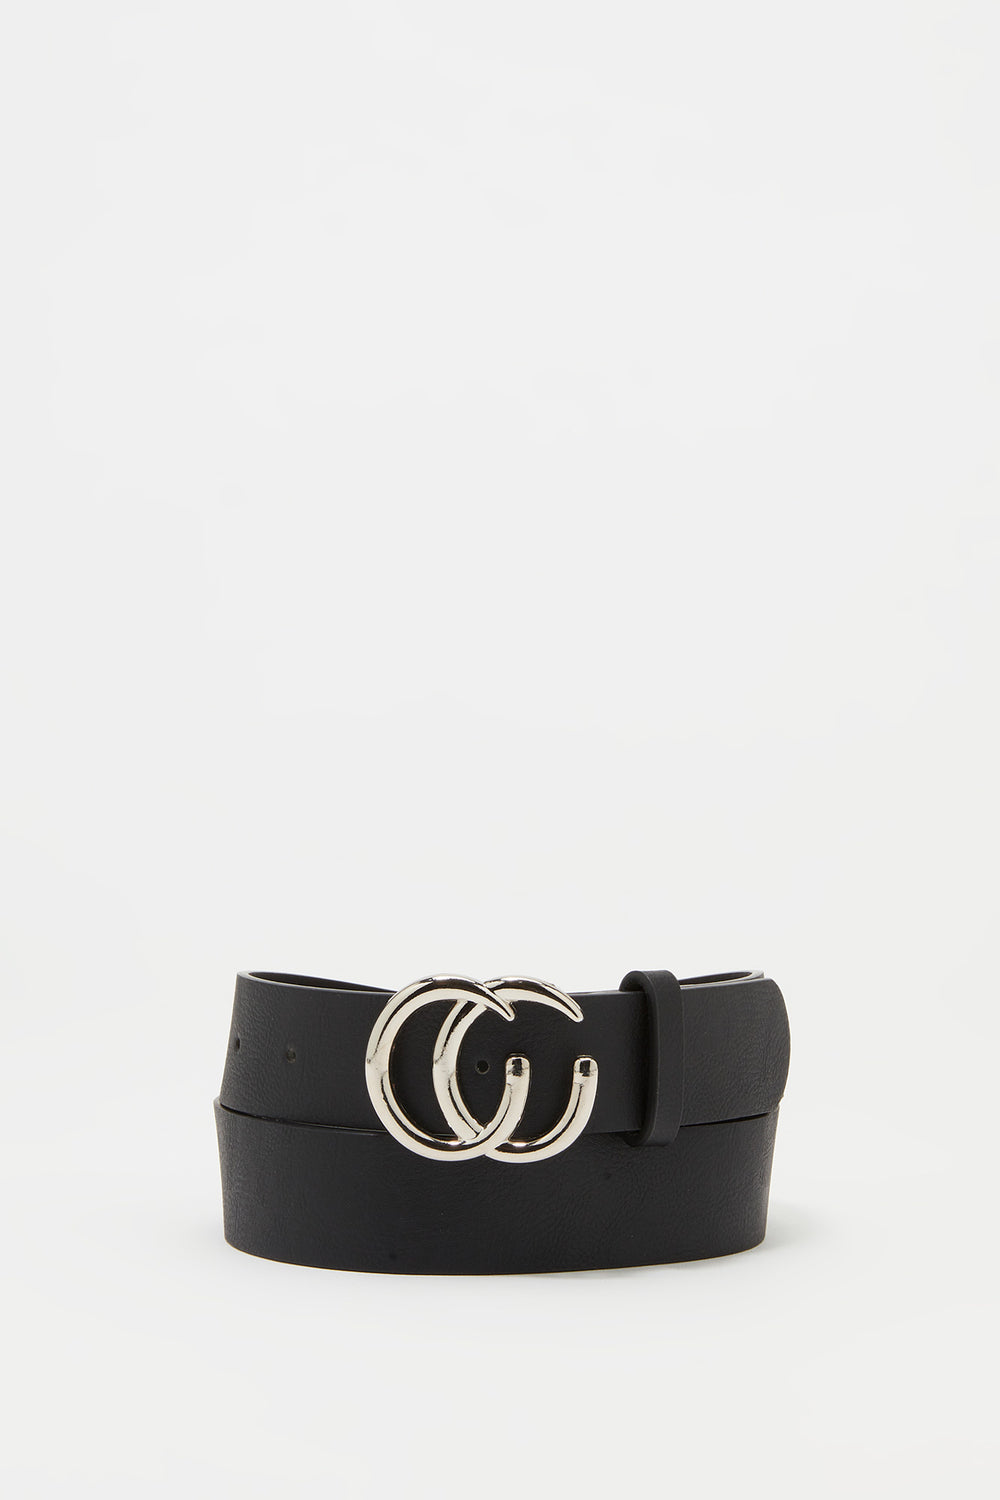 Link CC Buckle Belt Solid Black